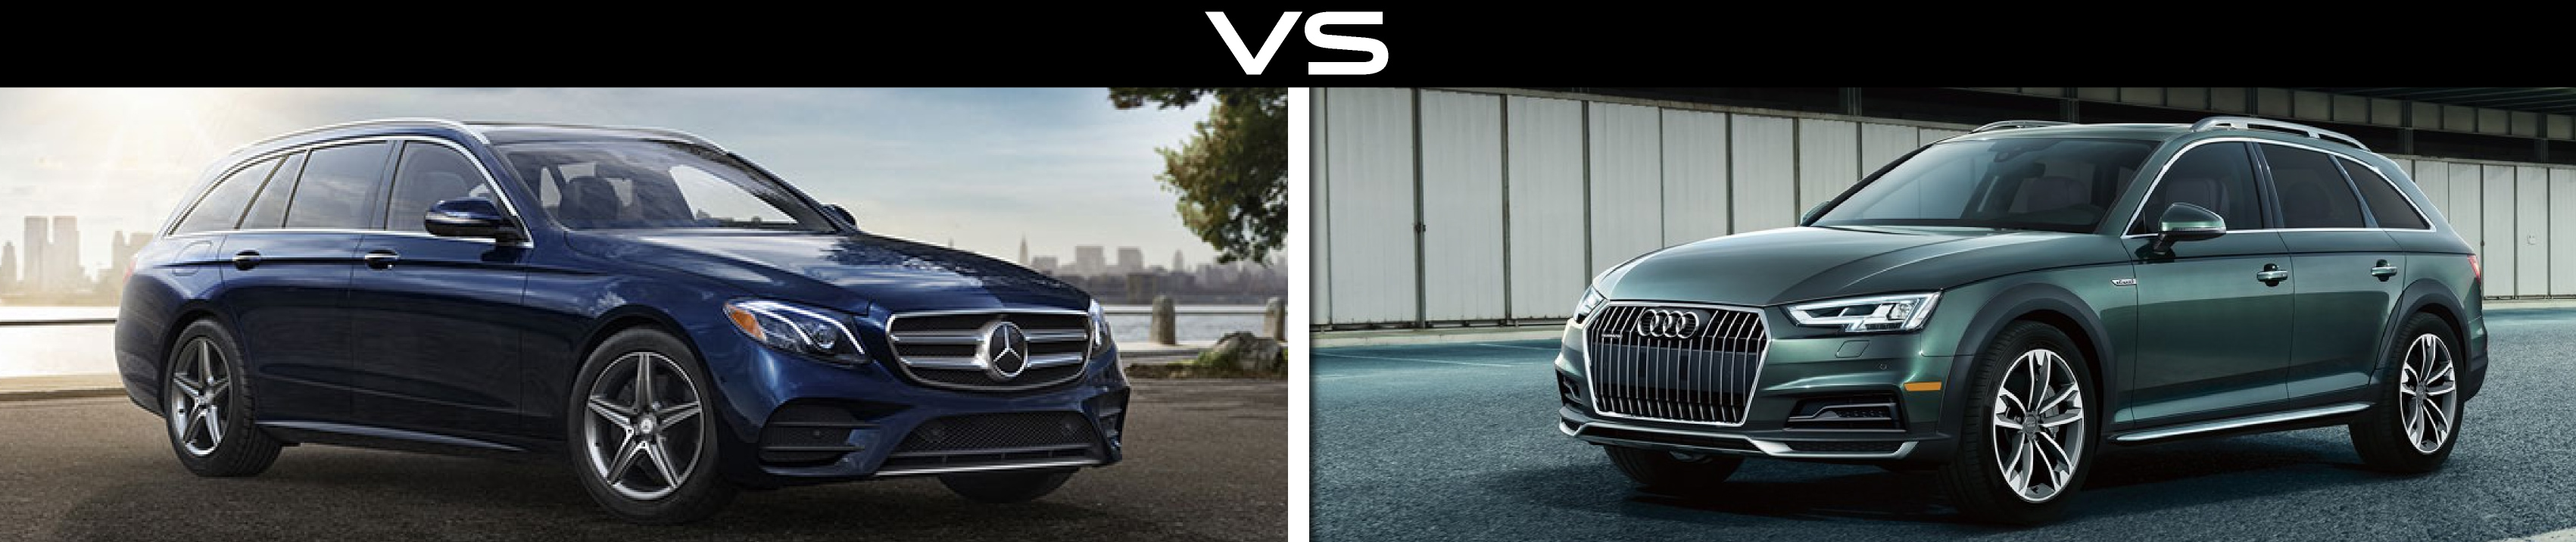 Mercedes-Benz E400 VS Audi A4 Allroad